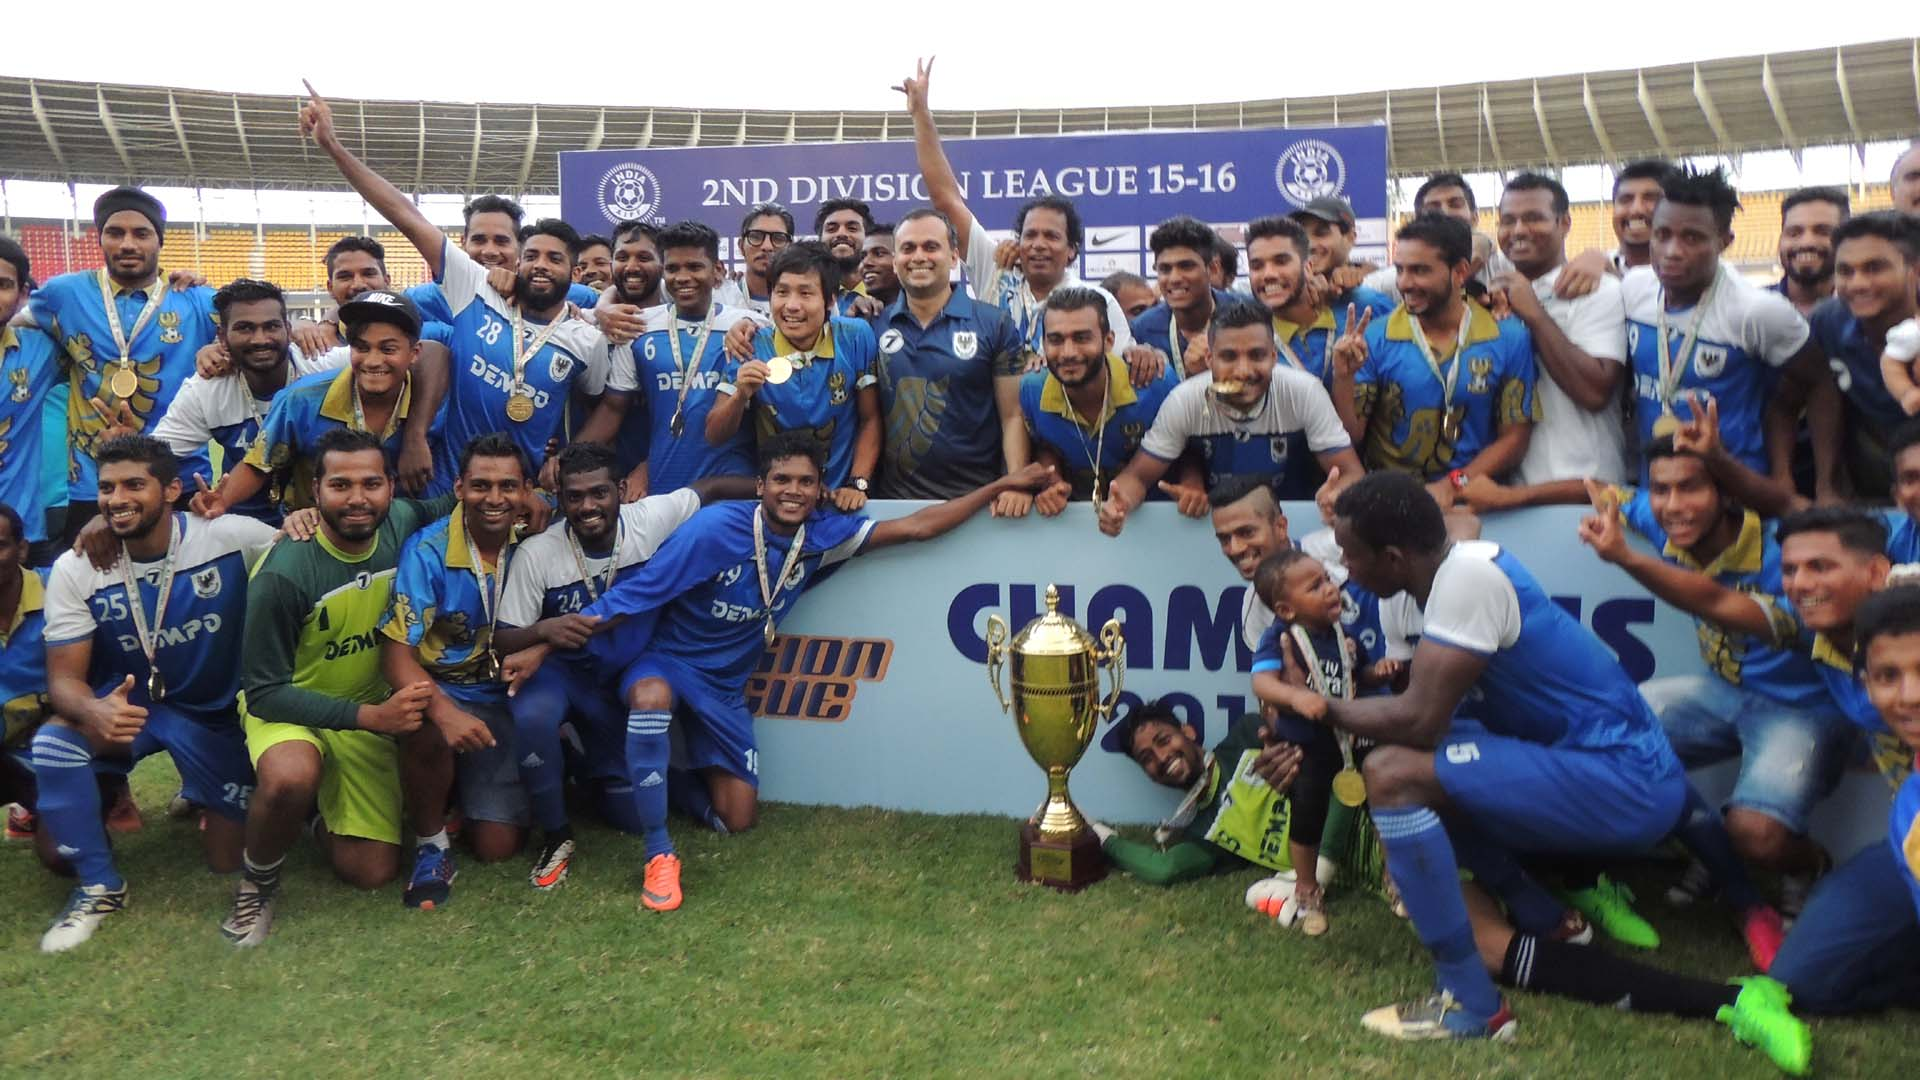 Dempo SC I-league 2nd division Champions 2016